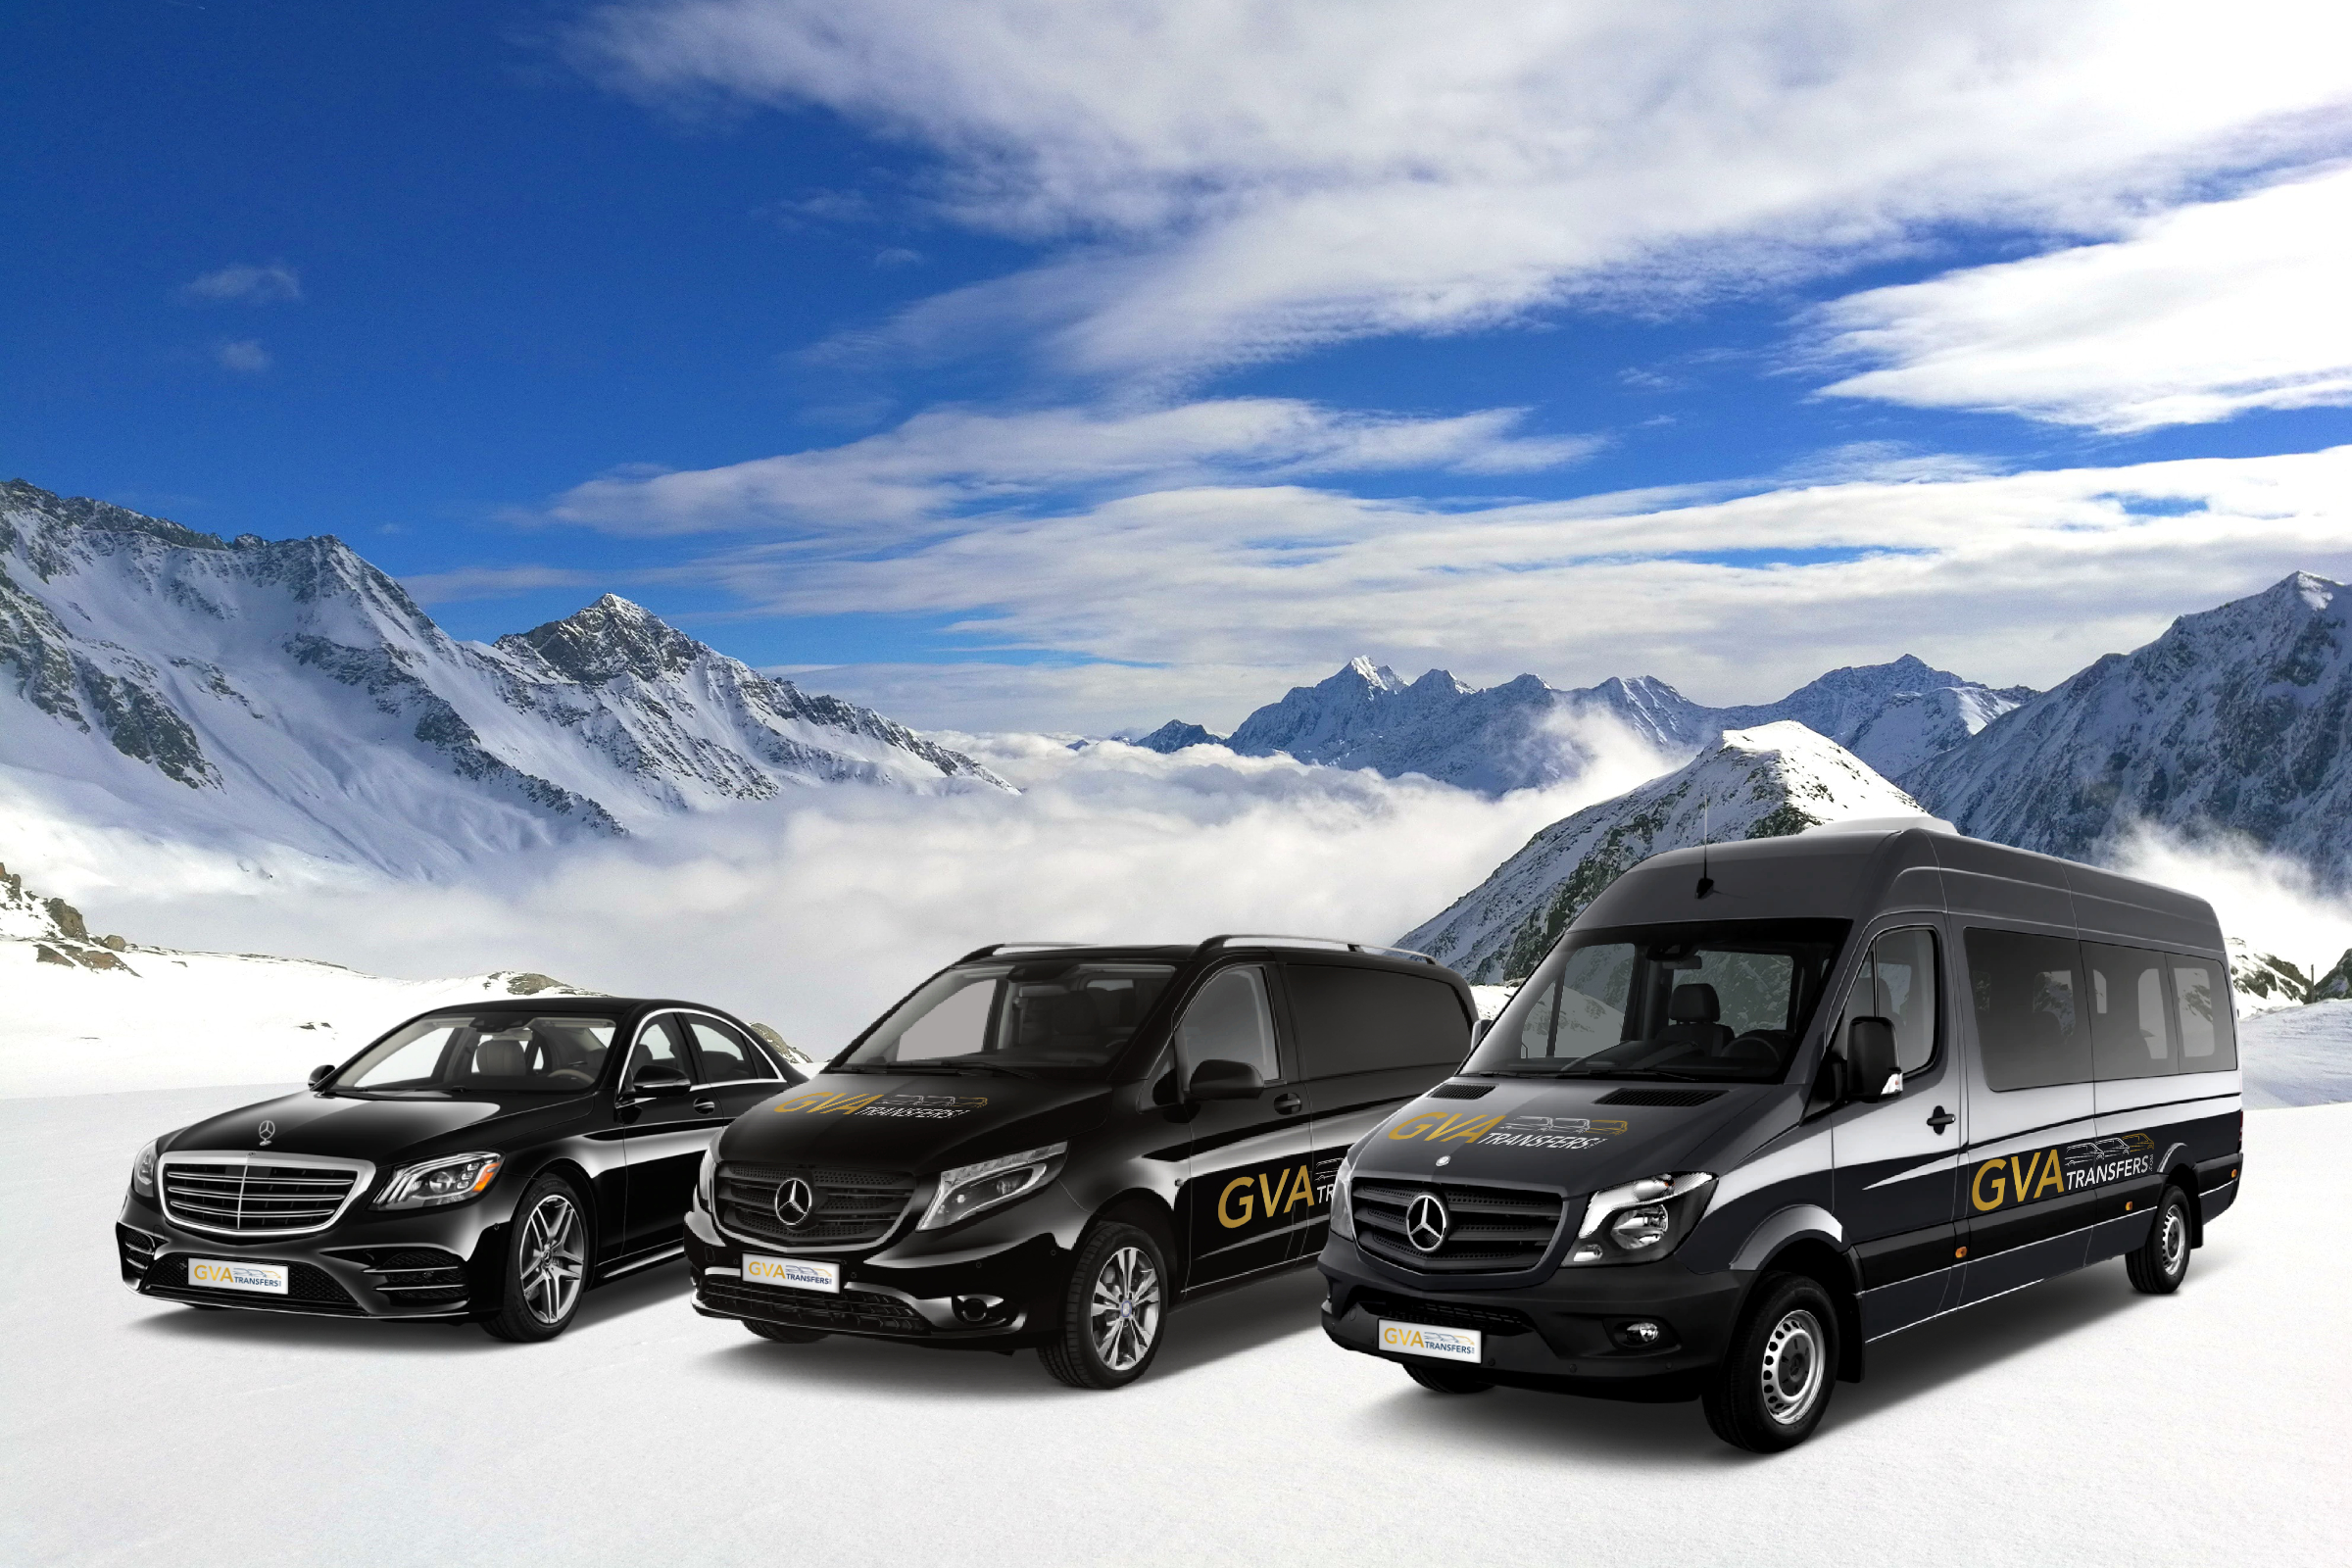 GVA Fleet vehicles mercedes